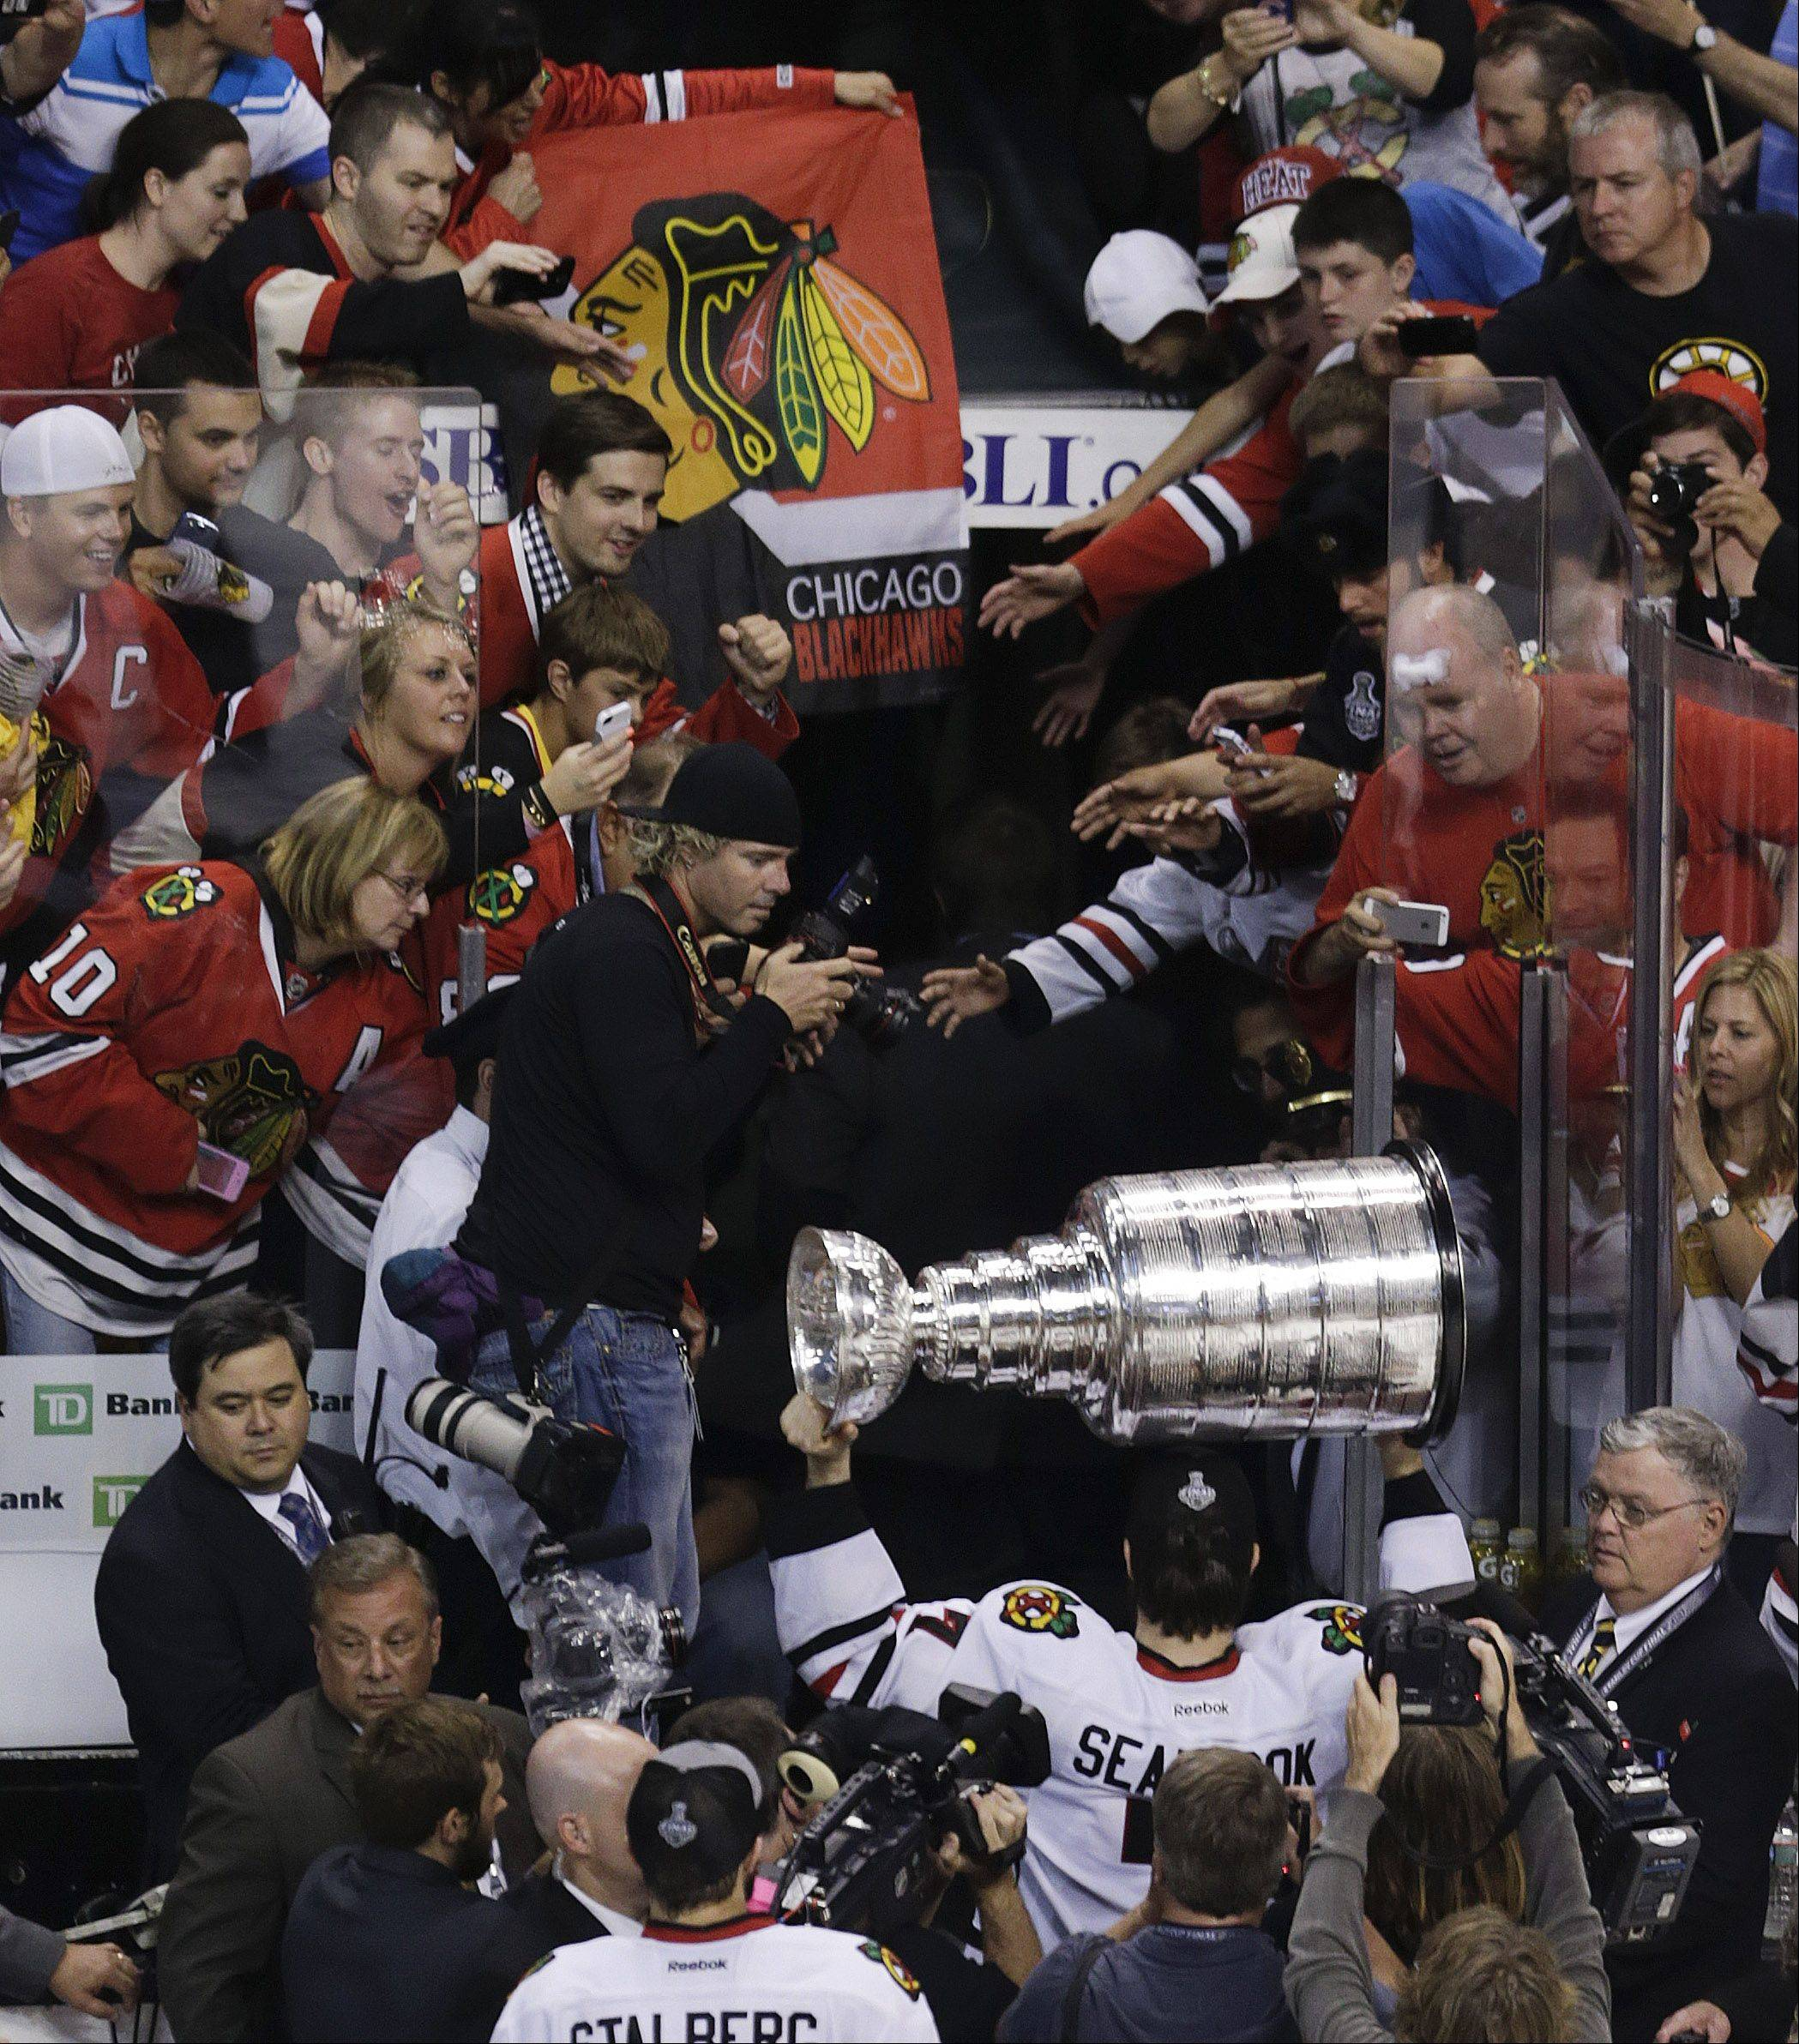 Chicago Blackhawks defenseman Brent Seabrook carries the Stanley Cup off the ice amid Blackhawks fans after the Blackhawks beat the Boston Bruins in Stanley Cup Finals Monday.